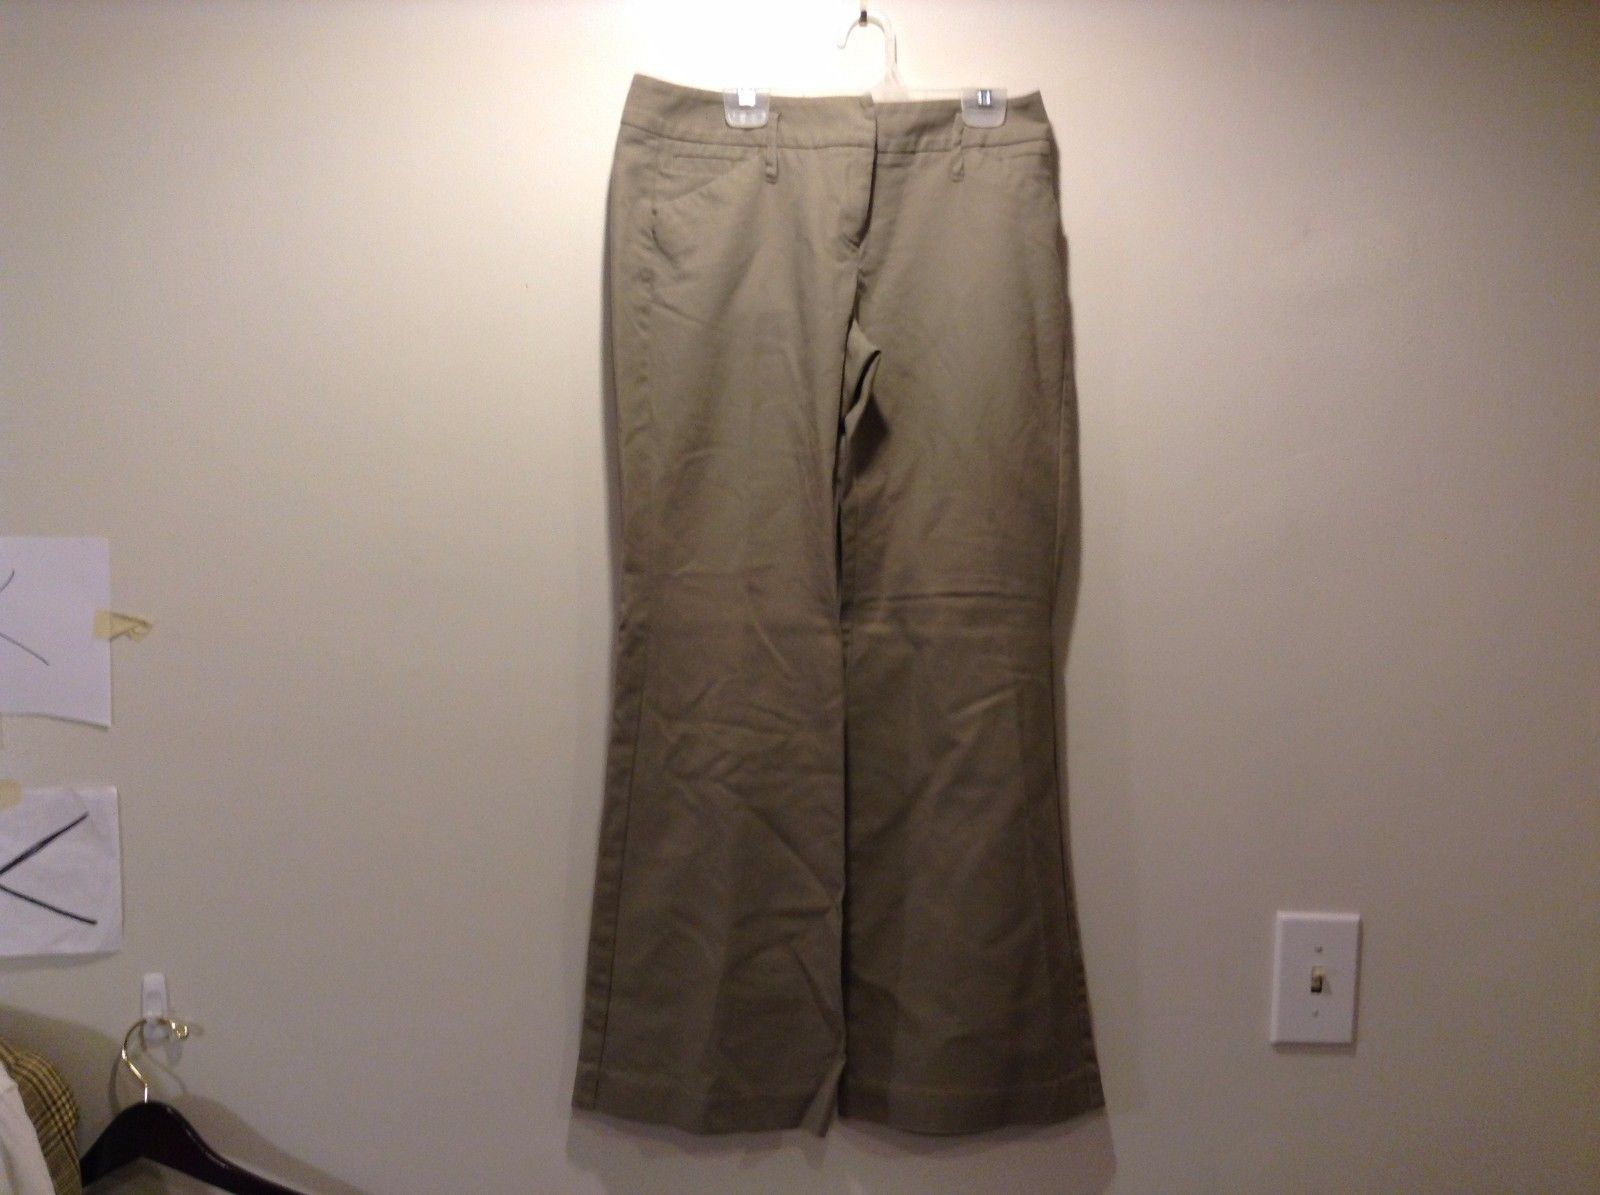 Used Good Condition New York And Company Khaki Cotton Blend Slacks Size 4